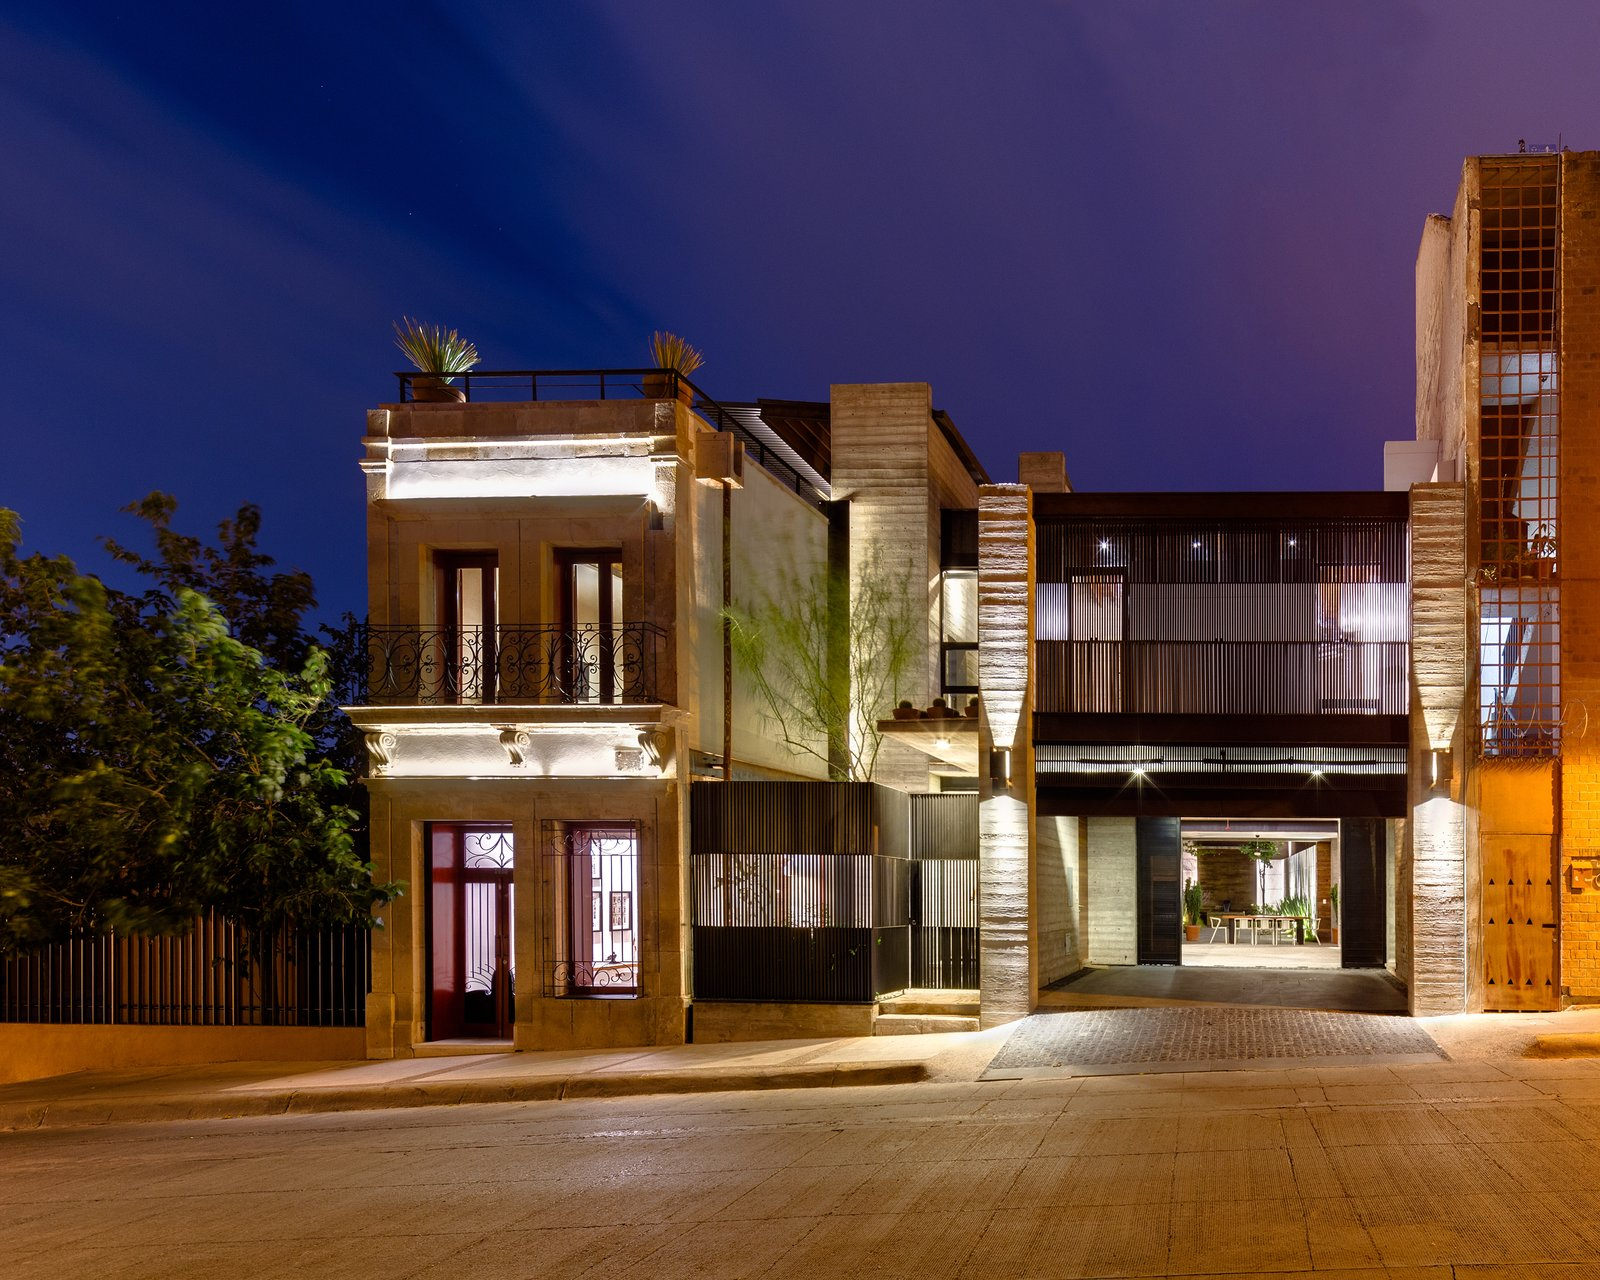 The front elevation is seen at night. The old structure fits on a compact 130-square-foot lot, while the new building adds an extra 1,000 square feet. Adobe walls, wood beams, limestone facade, and earthen roof all make up the tactful blend of old and new.